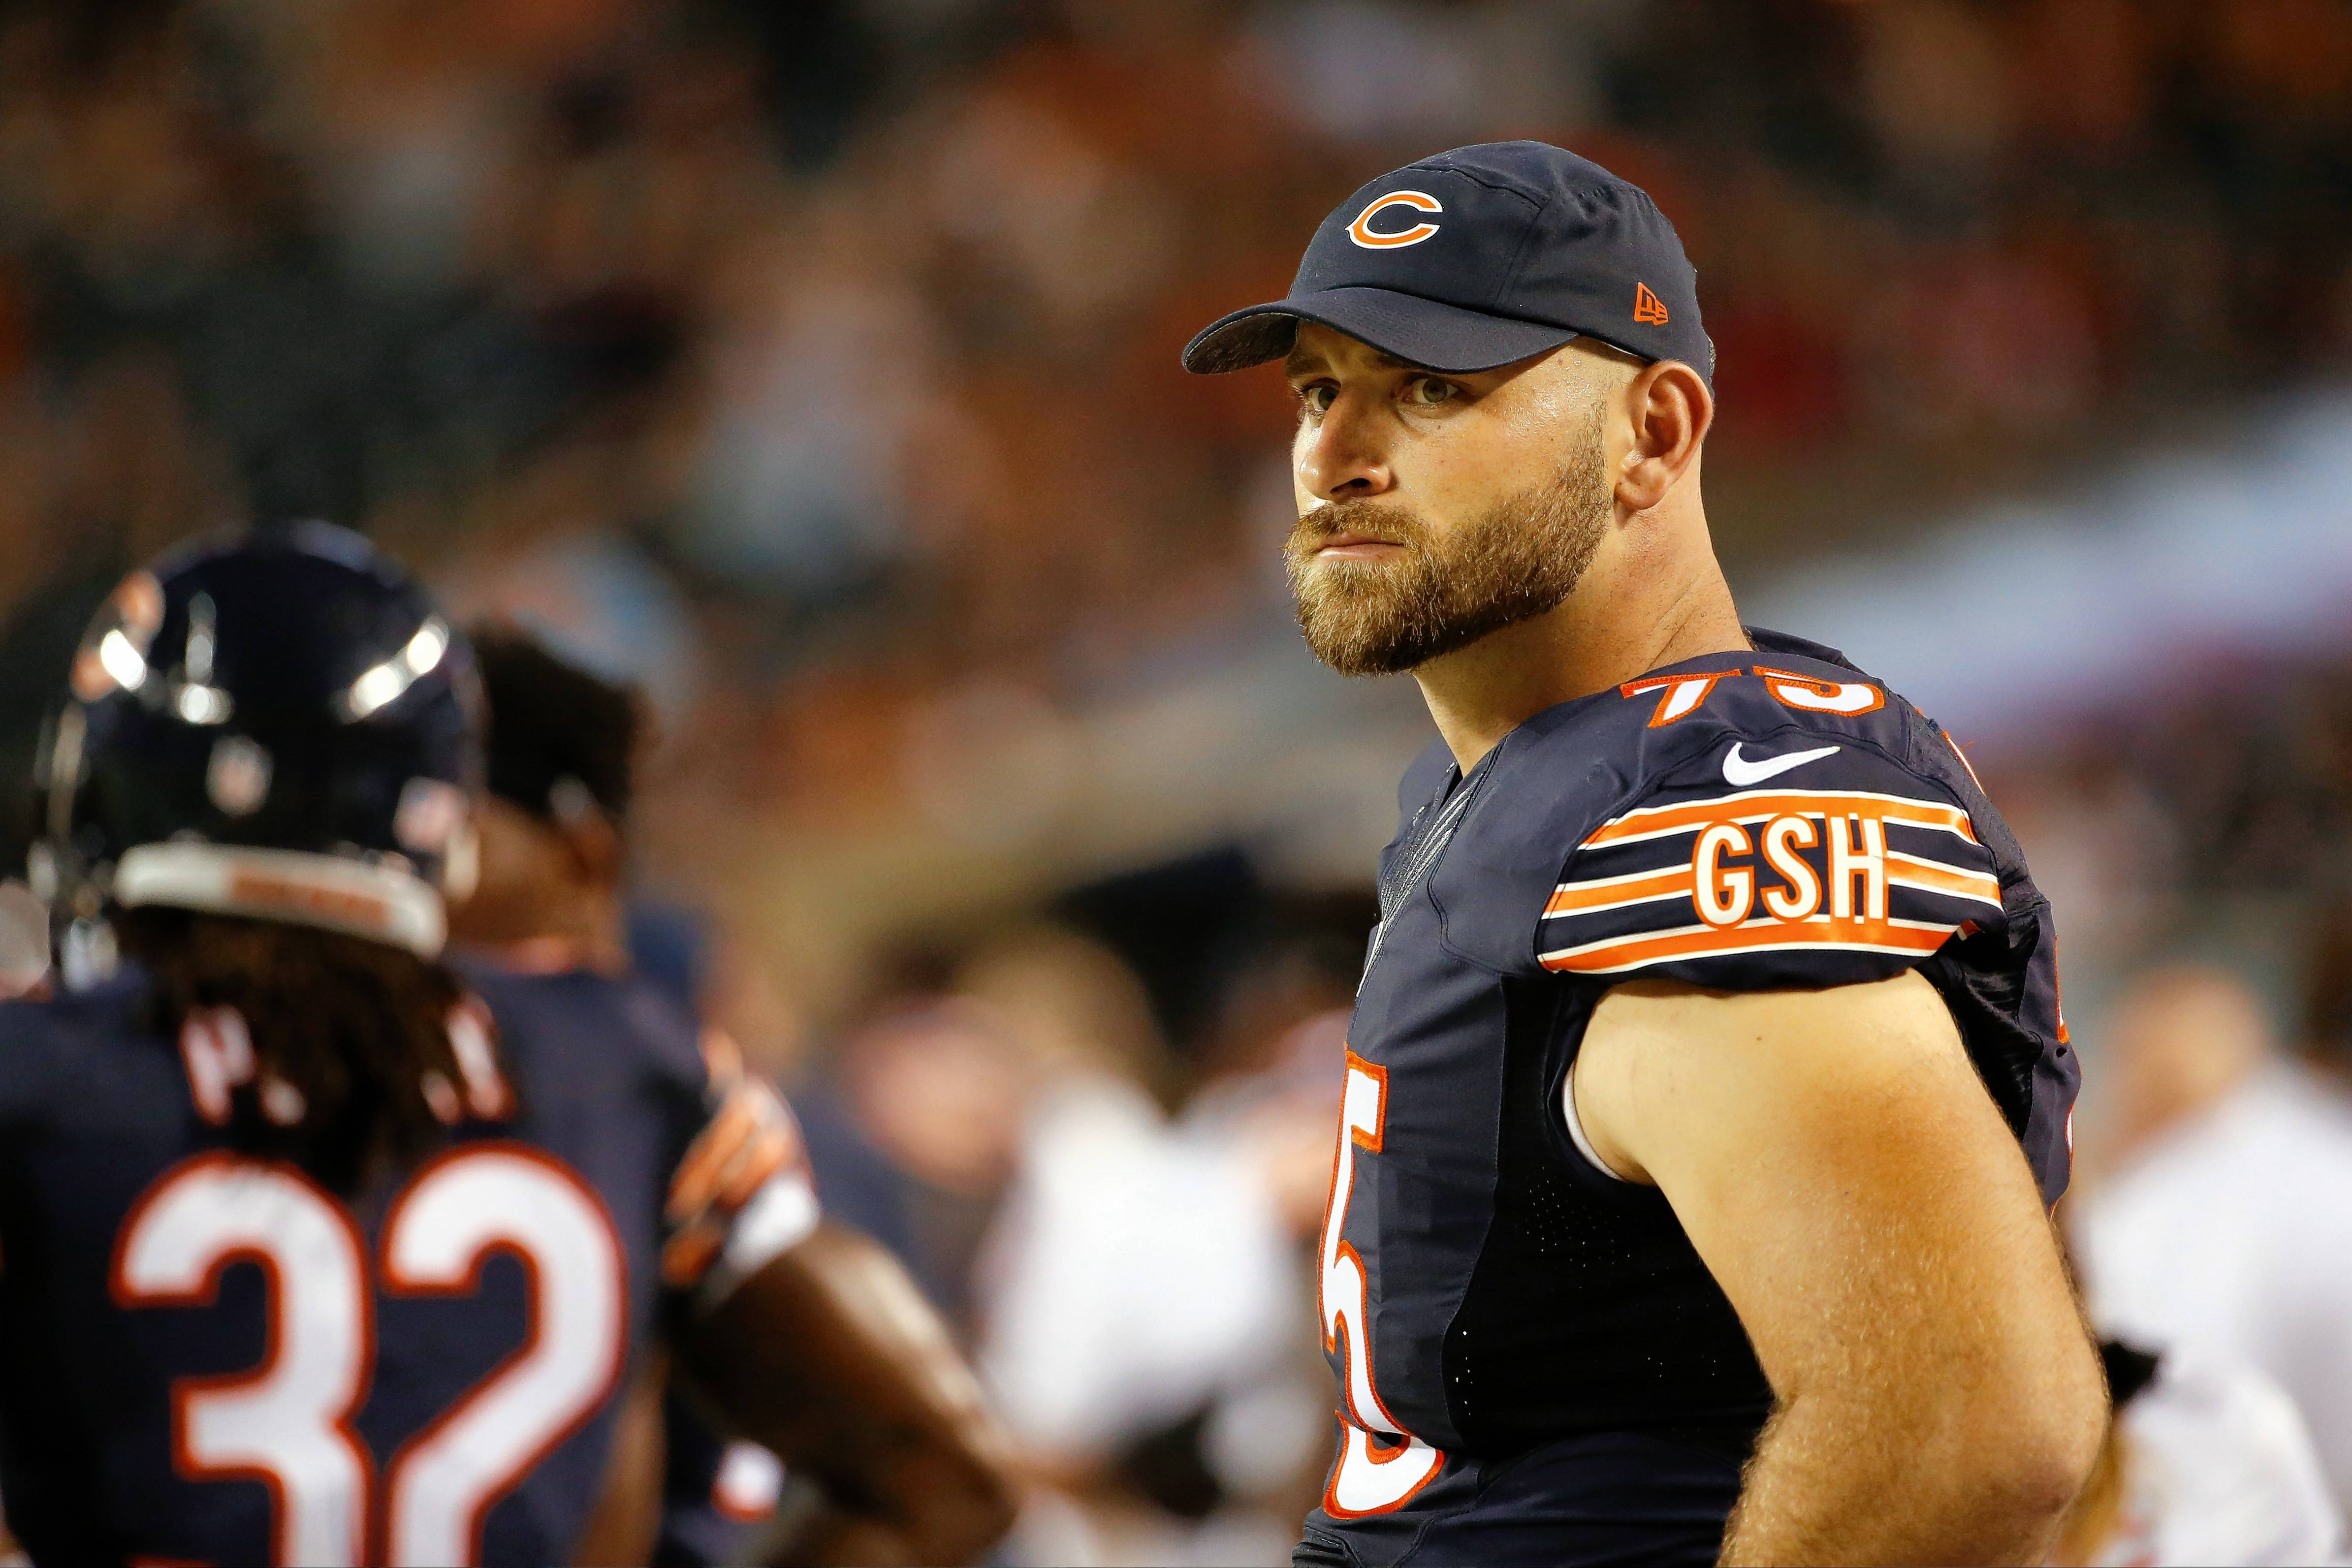 Chicago Bears guard Kyle Long practiced in full Thursday for the first time since suffering a ligament damage in a gruesome ankle injury last November. Long is expected to return Sunday when the Bears play the Steelers.